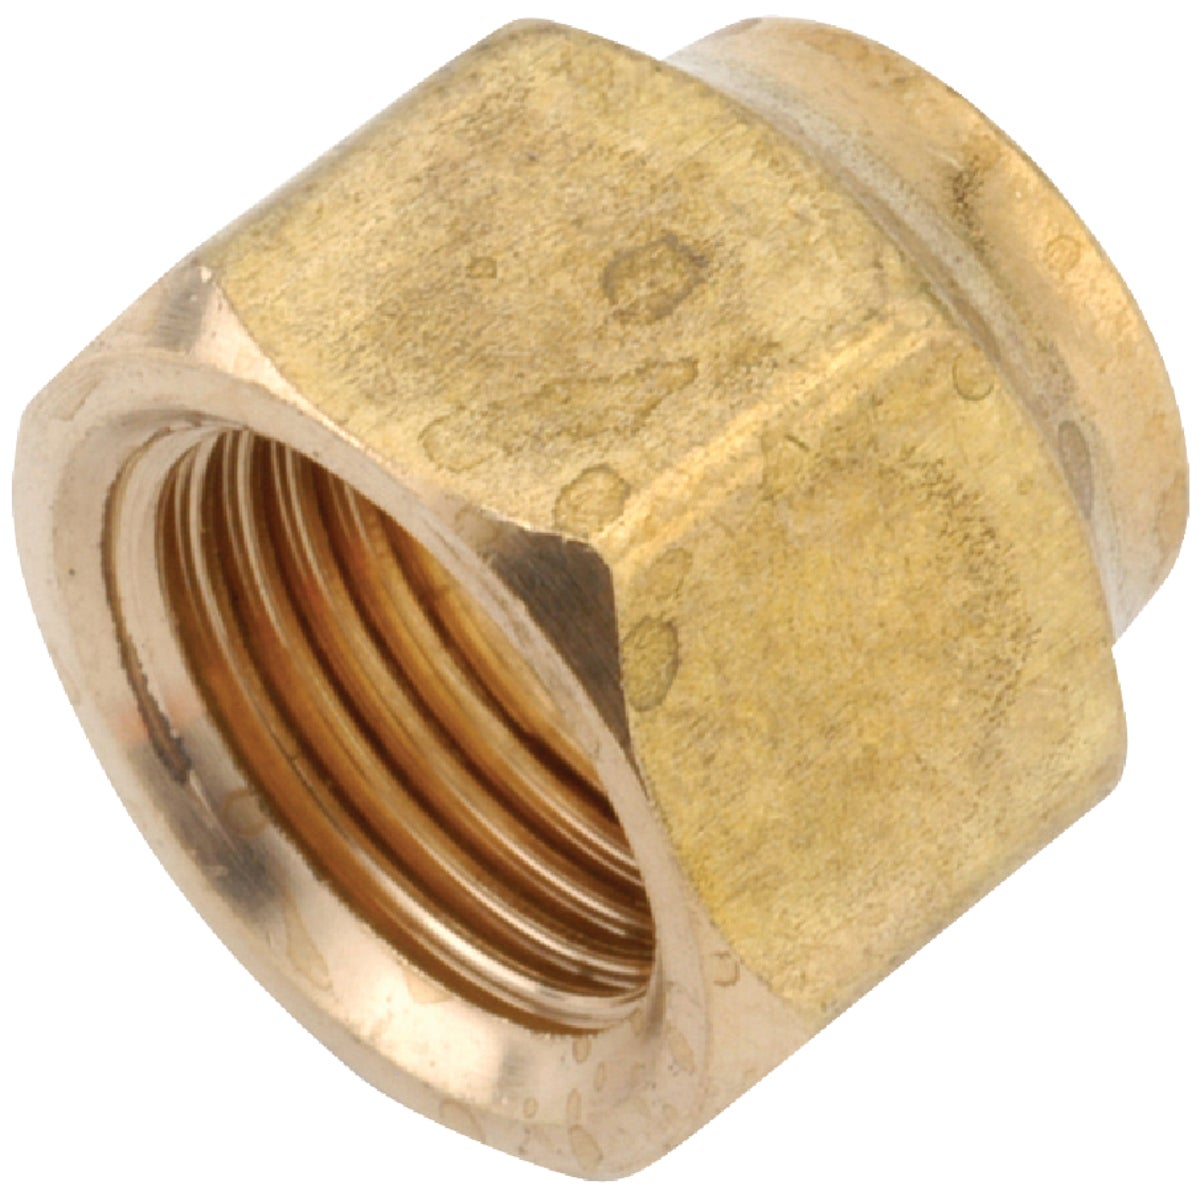 "5/8"" FLARE NUT - 754018-10 by Anderson Metals Corp"